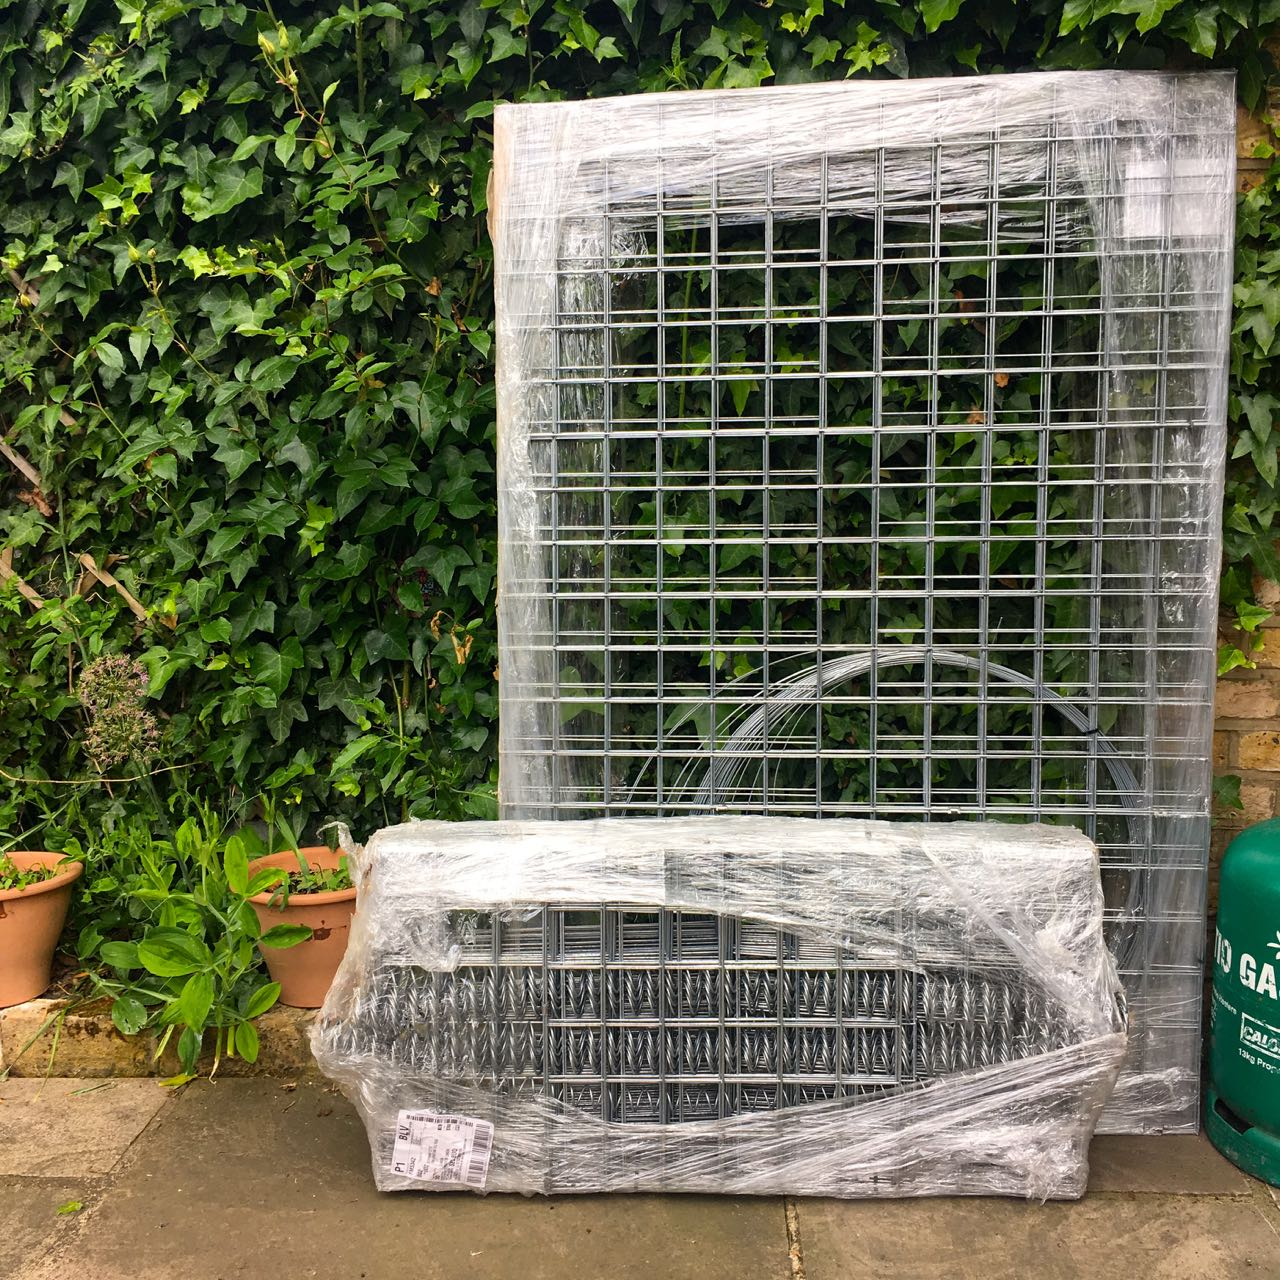 OUR GABION BASKETS, NOT LOOKING VERY BASKET-LIKE YET.